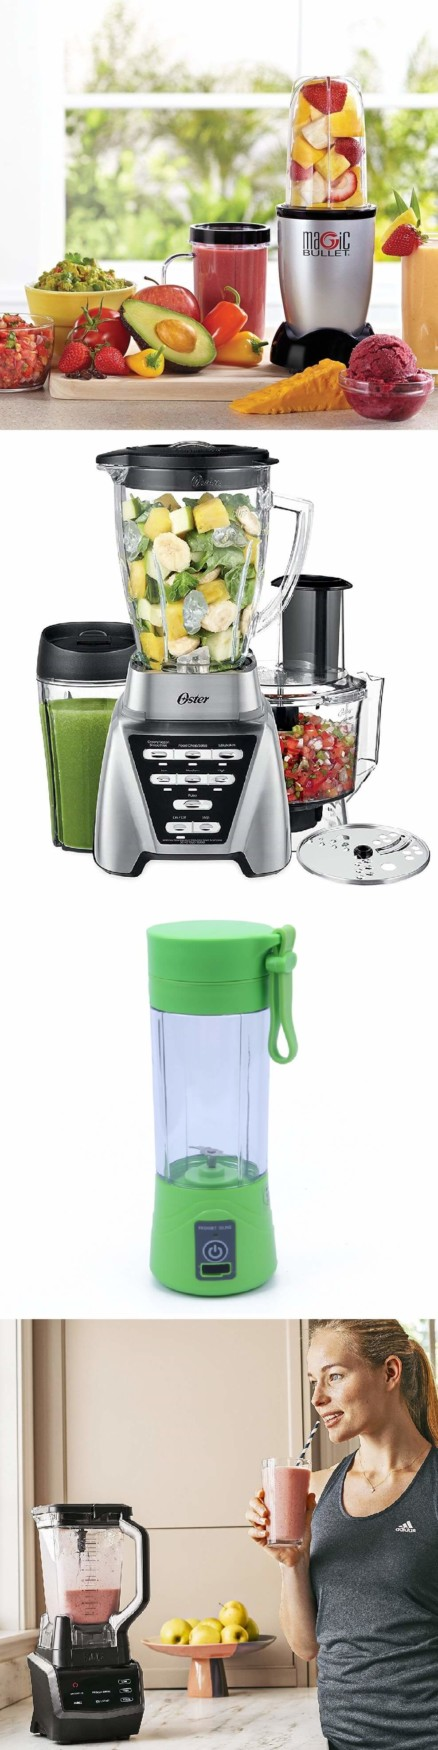 Blender. 50 Best Kitchen Utensils, Tools & Gadgets to Spend Less Time in the Kitchen